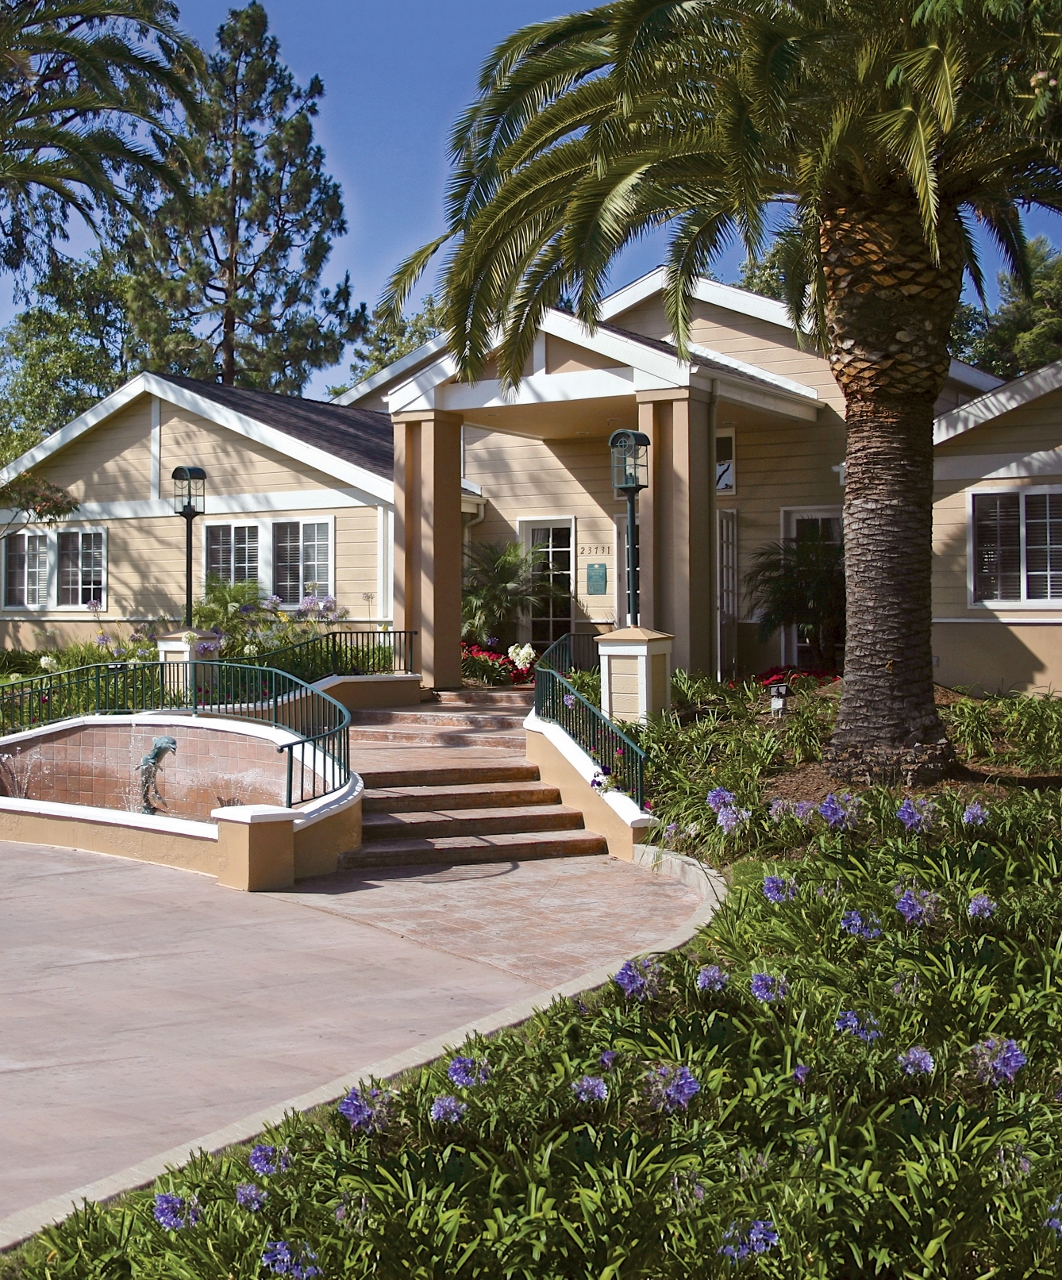 Map and Directions to The Villas at Monarch Beach in Dana